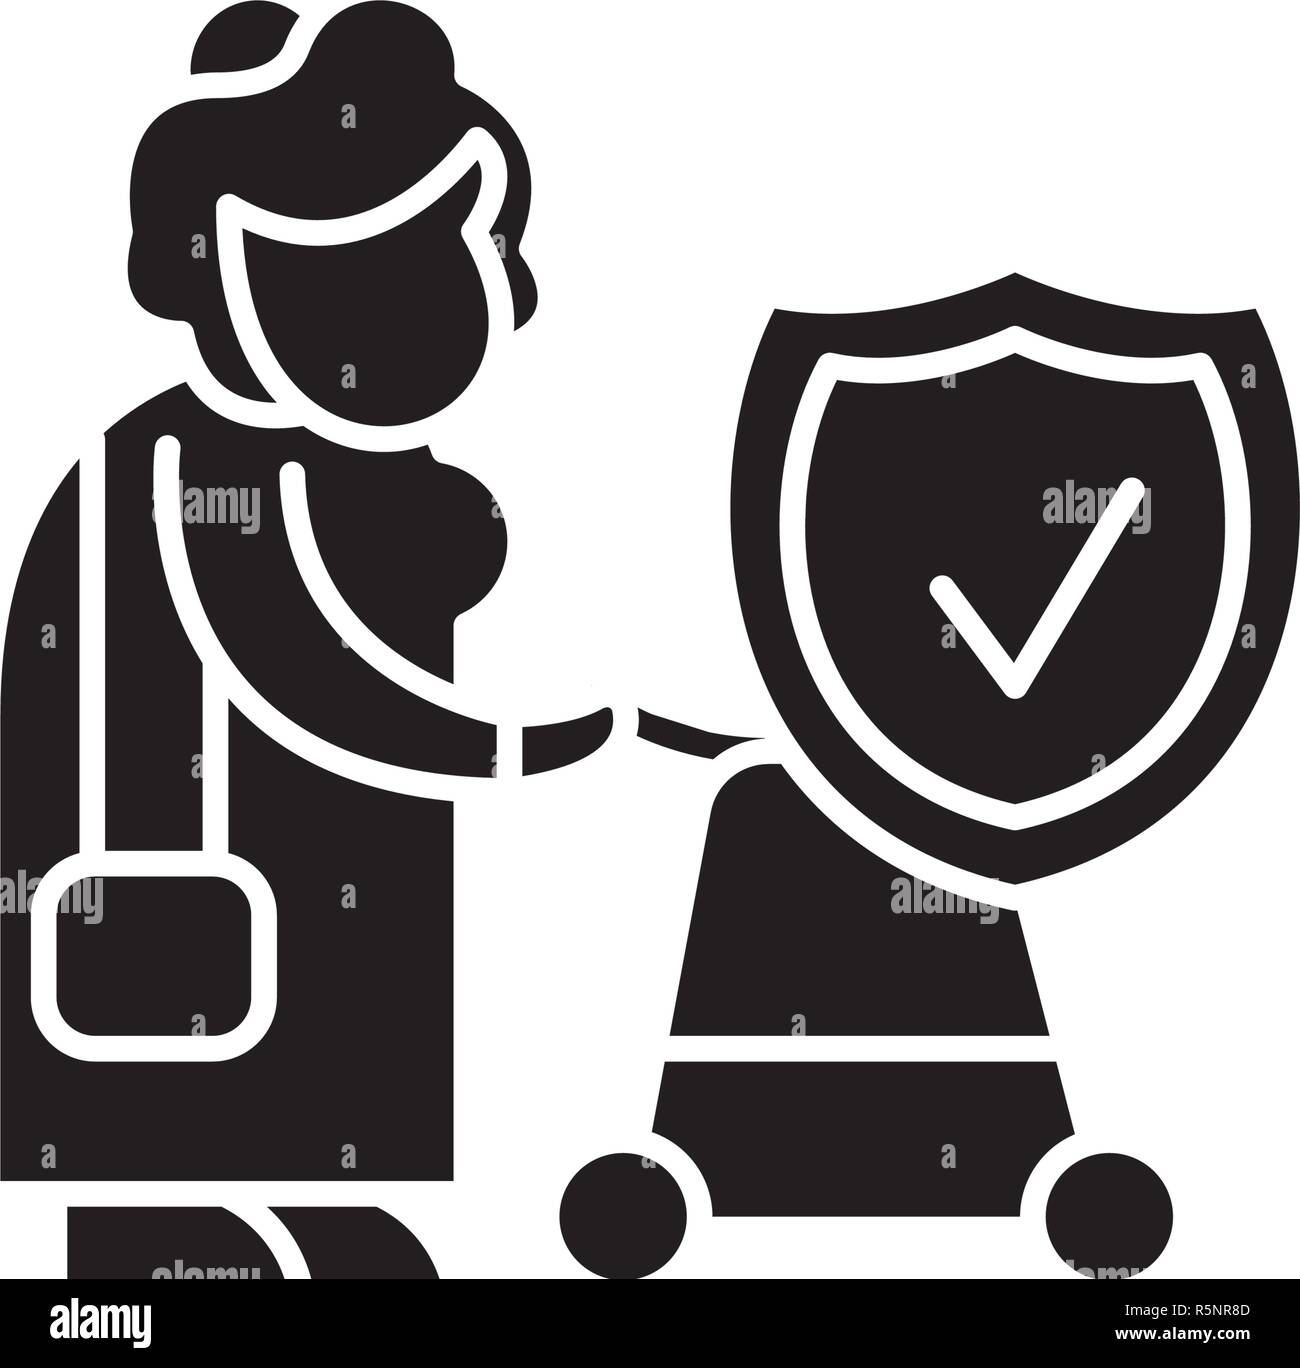 Pension fund black icon, vector sign on isolated background. Pension fund concept symbol, illustration  - Stock Image